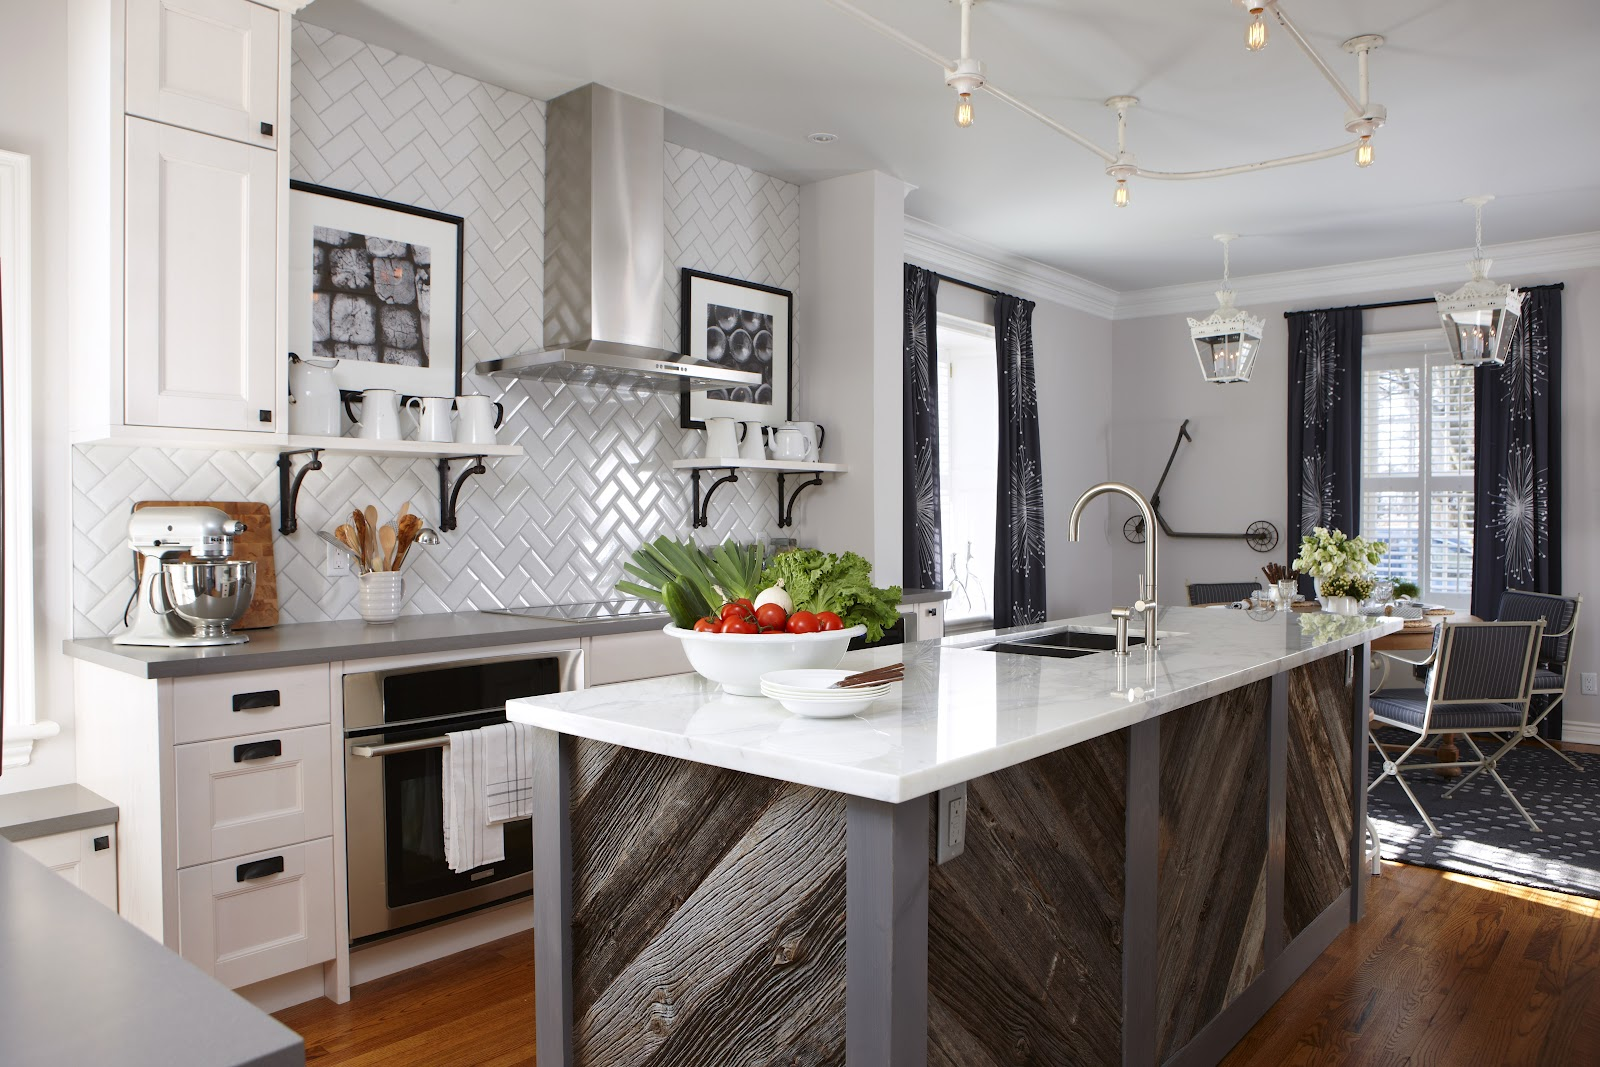 Kitchen Island Options Pictures Ideas From Hgtv: Design Maze: Week 3 @ Sarah 101 With Sarah Richardson